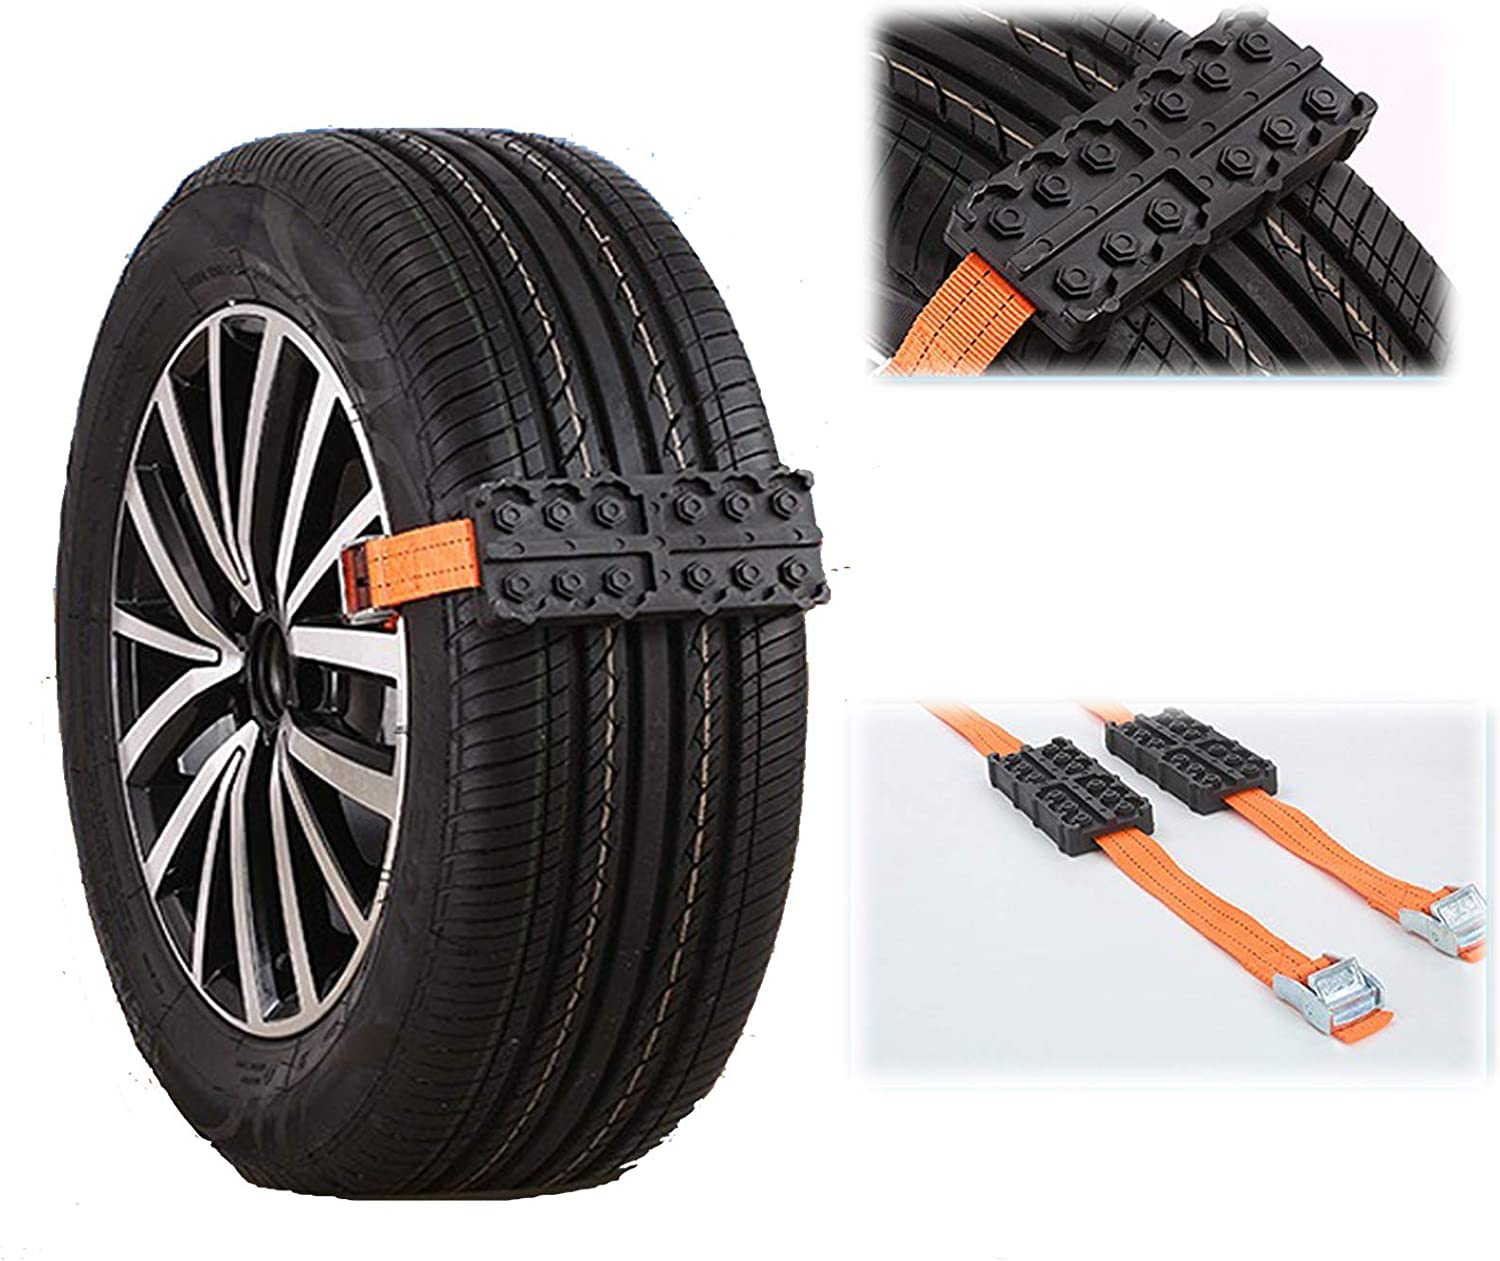 2 PCS Car Tire Anti-Skid Chains Snow Tire Chain Straps/ Anti-Slip Car Tyre Belt Protection Chain Universal Emergency chain,Portable Skid Block for Car//Truck//SUV Outdoor Emergency